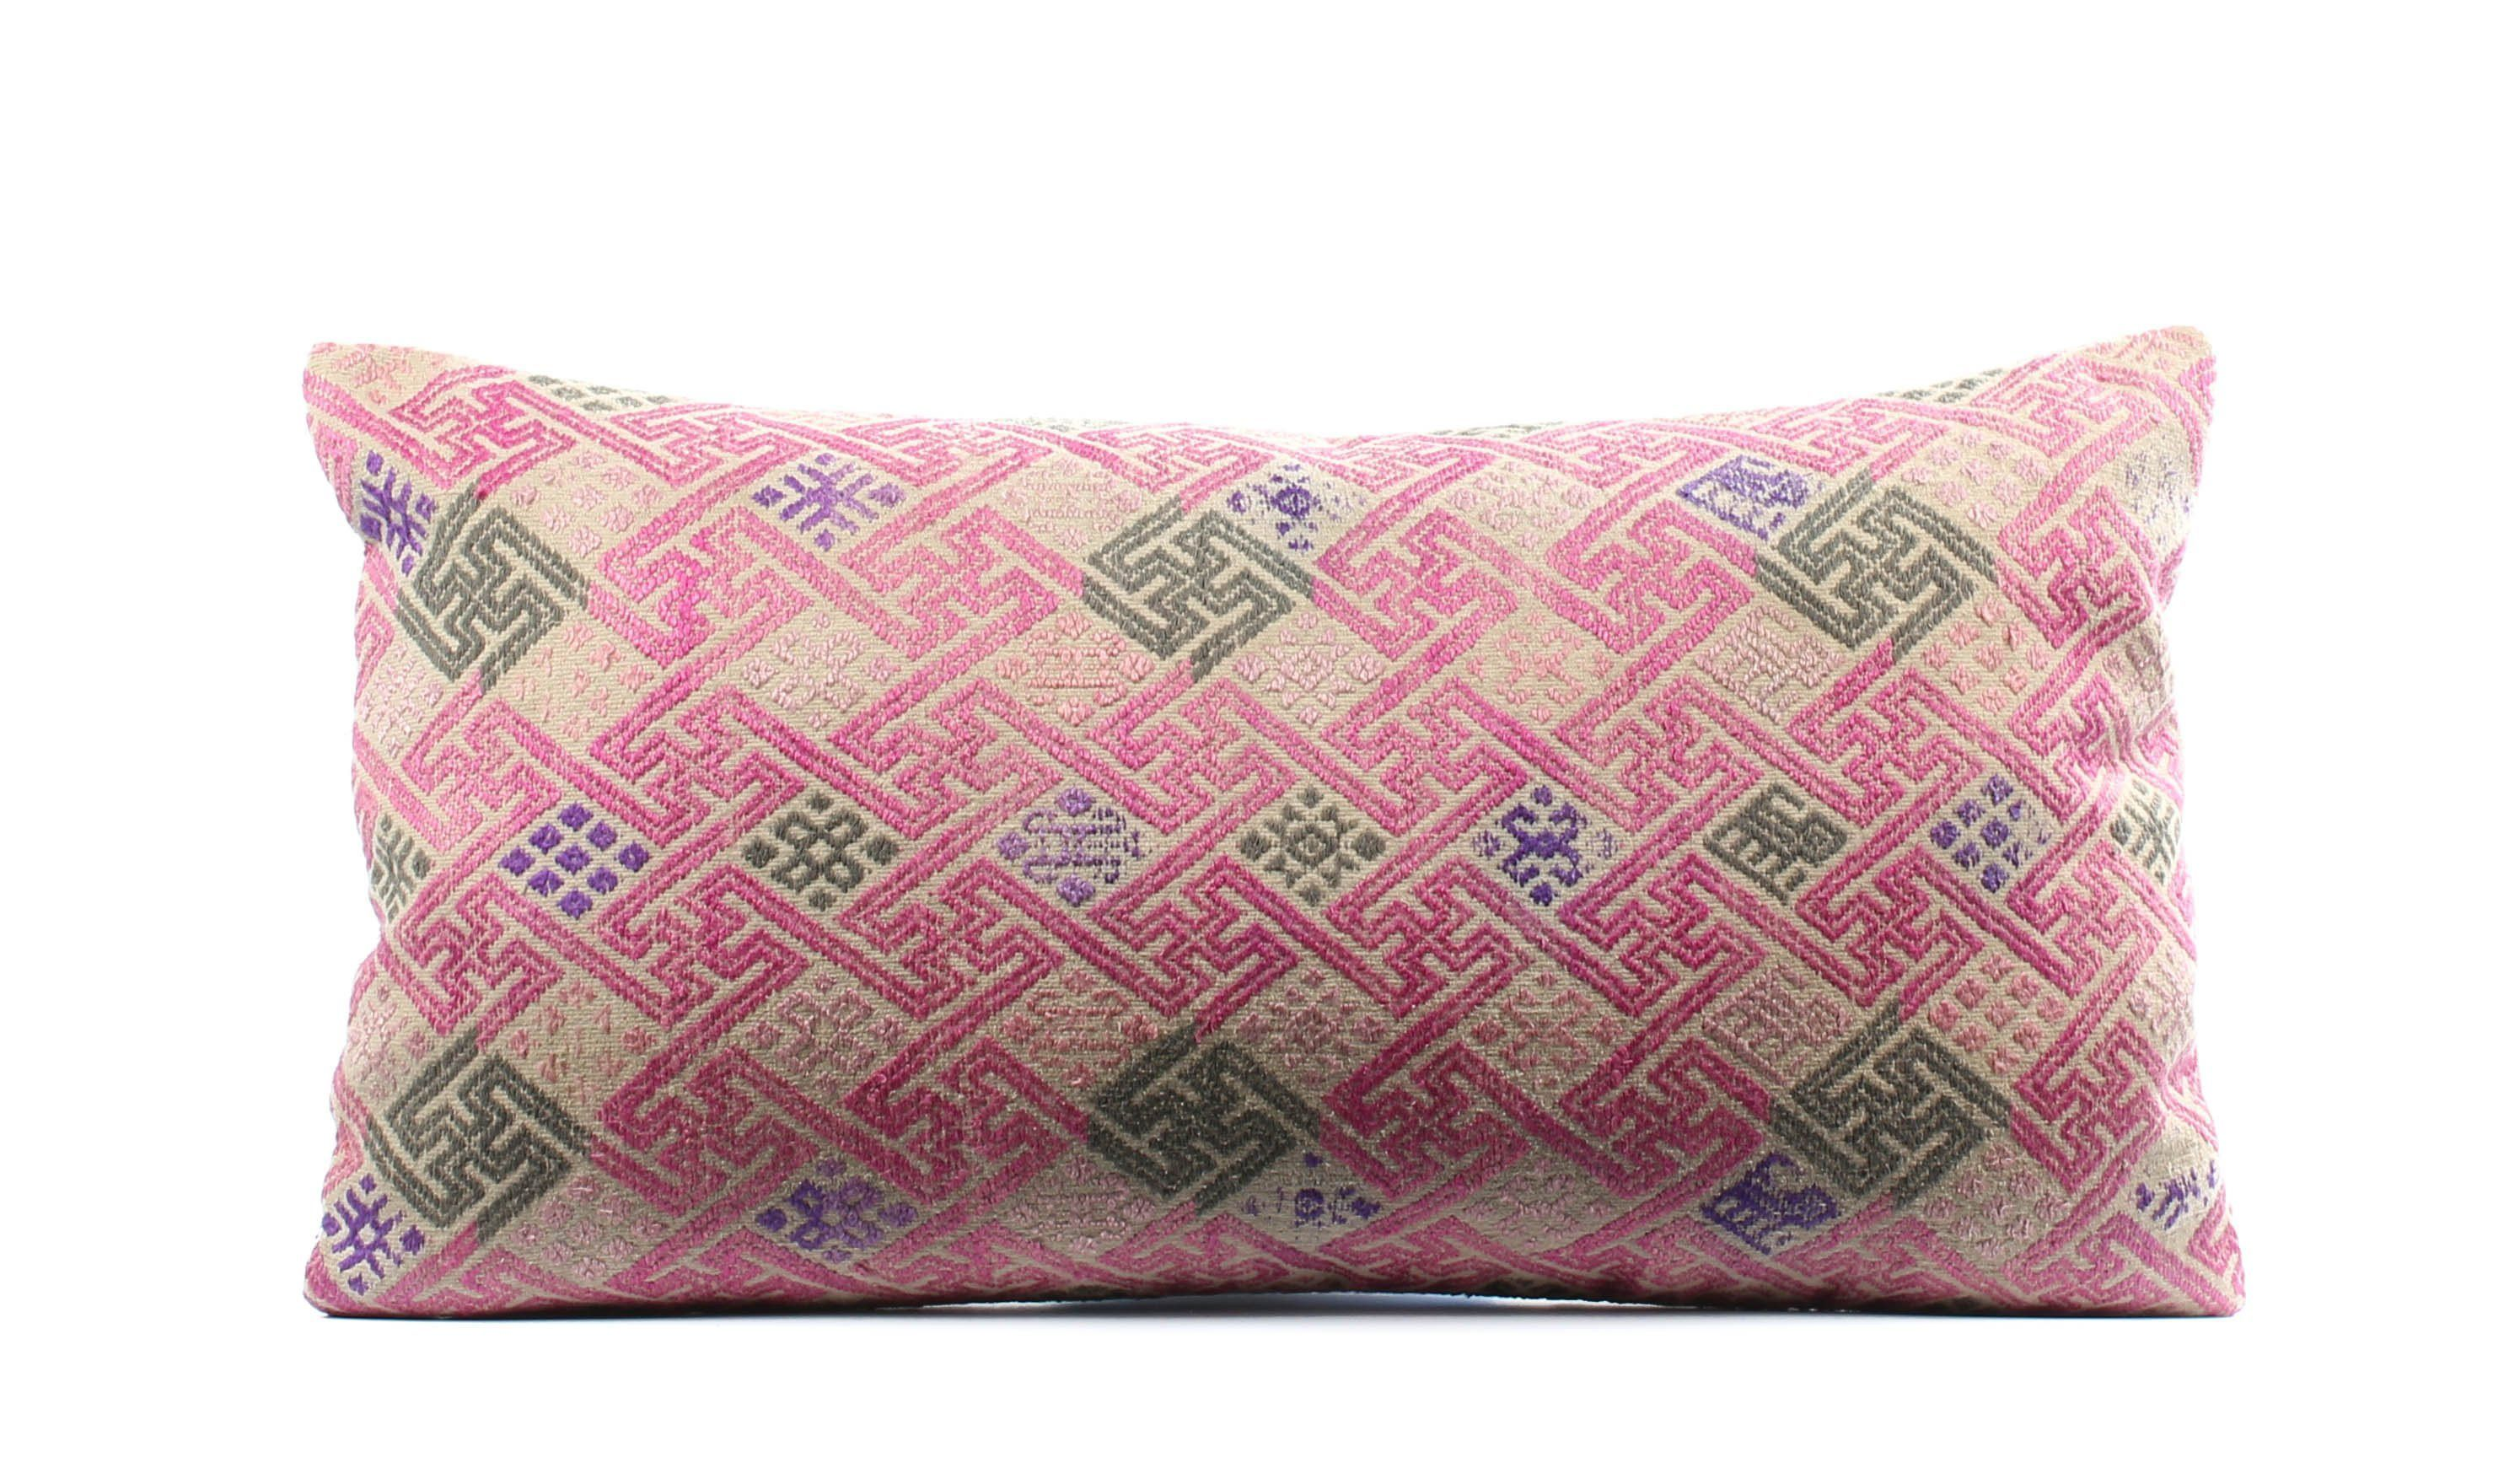 Chinese wedding blanket pillow cover boho pillow vintage